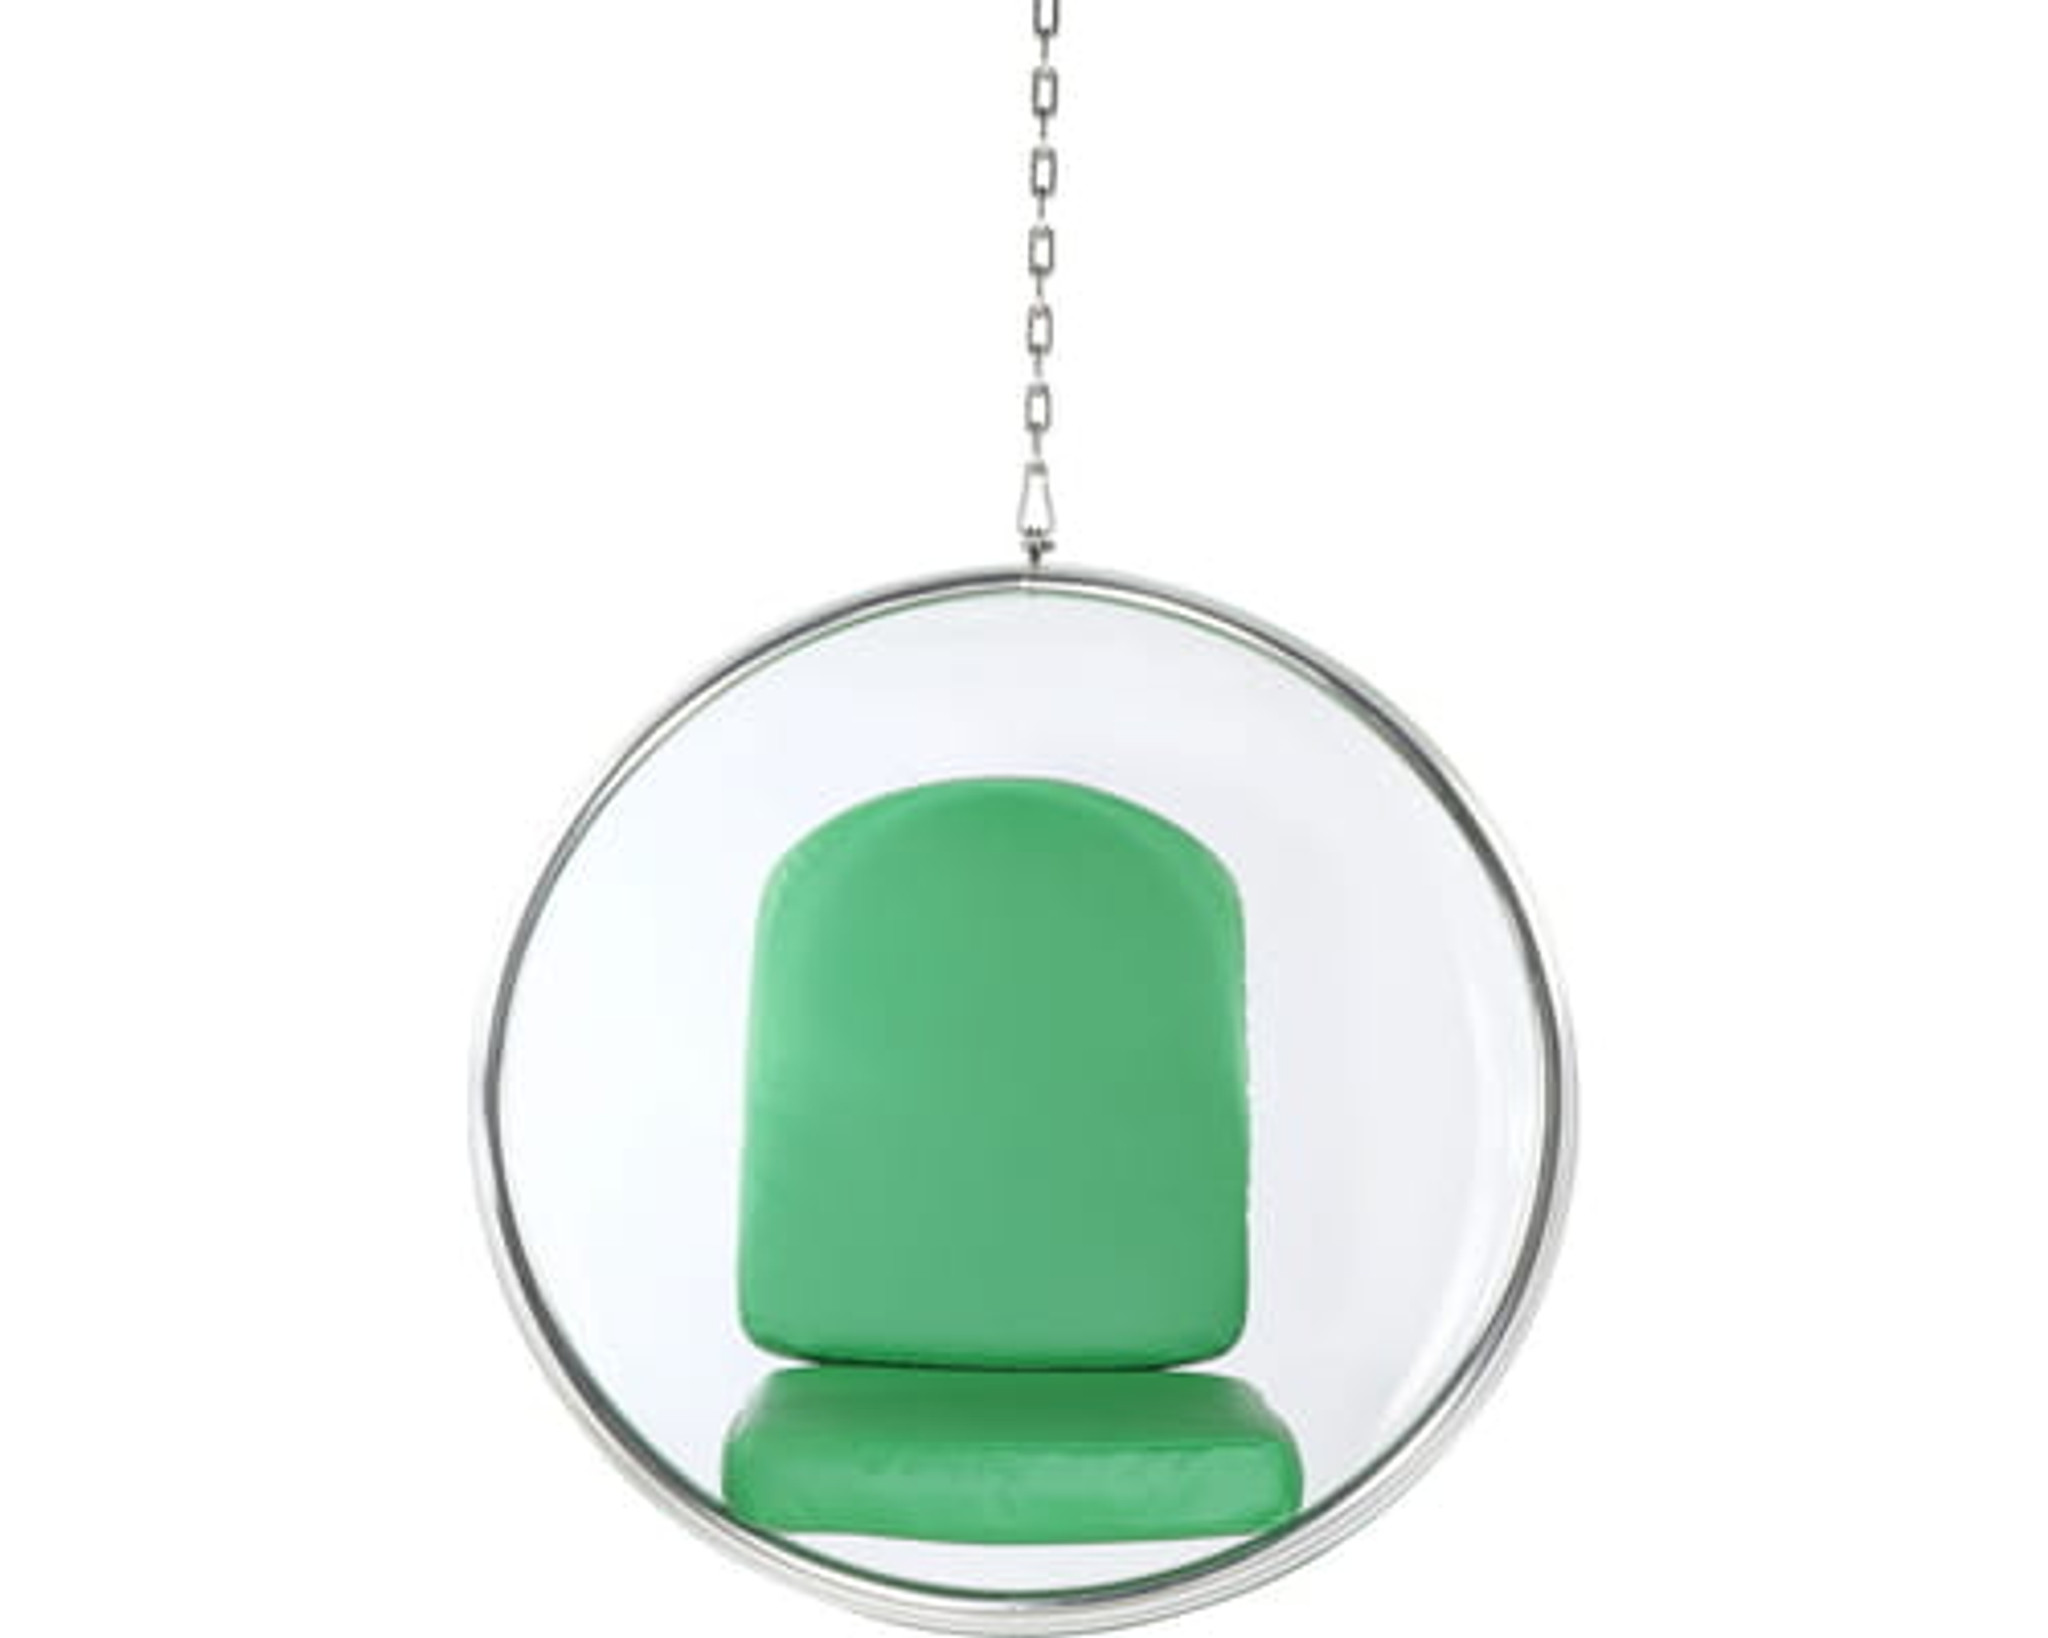 clearhomedesign.com clear-bubble-chair-with-green-cushion-chrome-chain